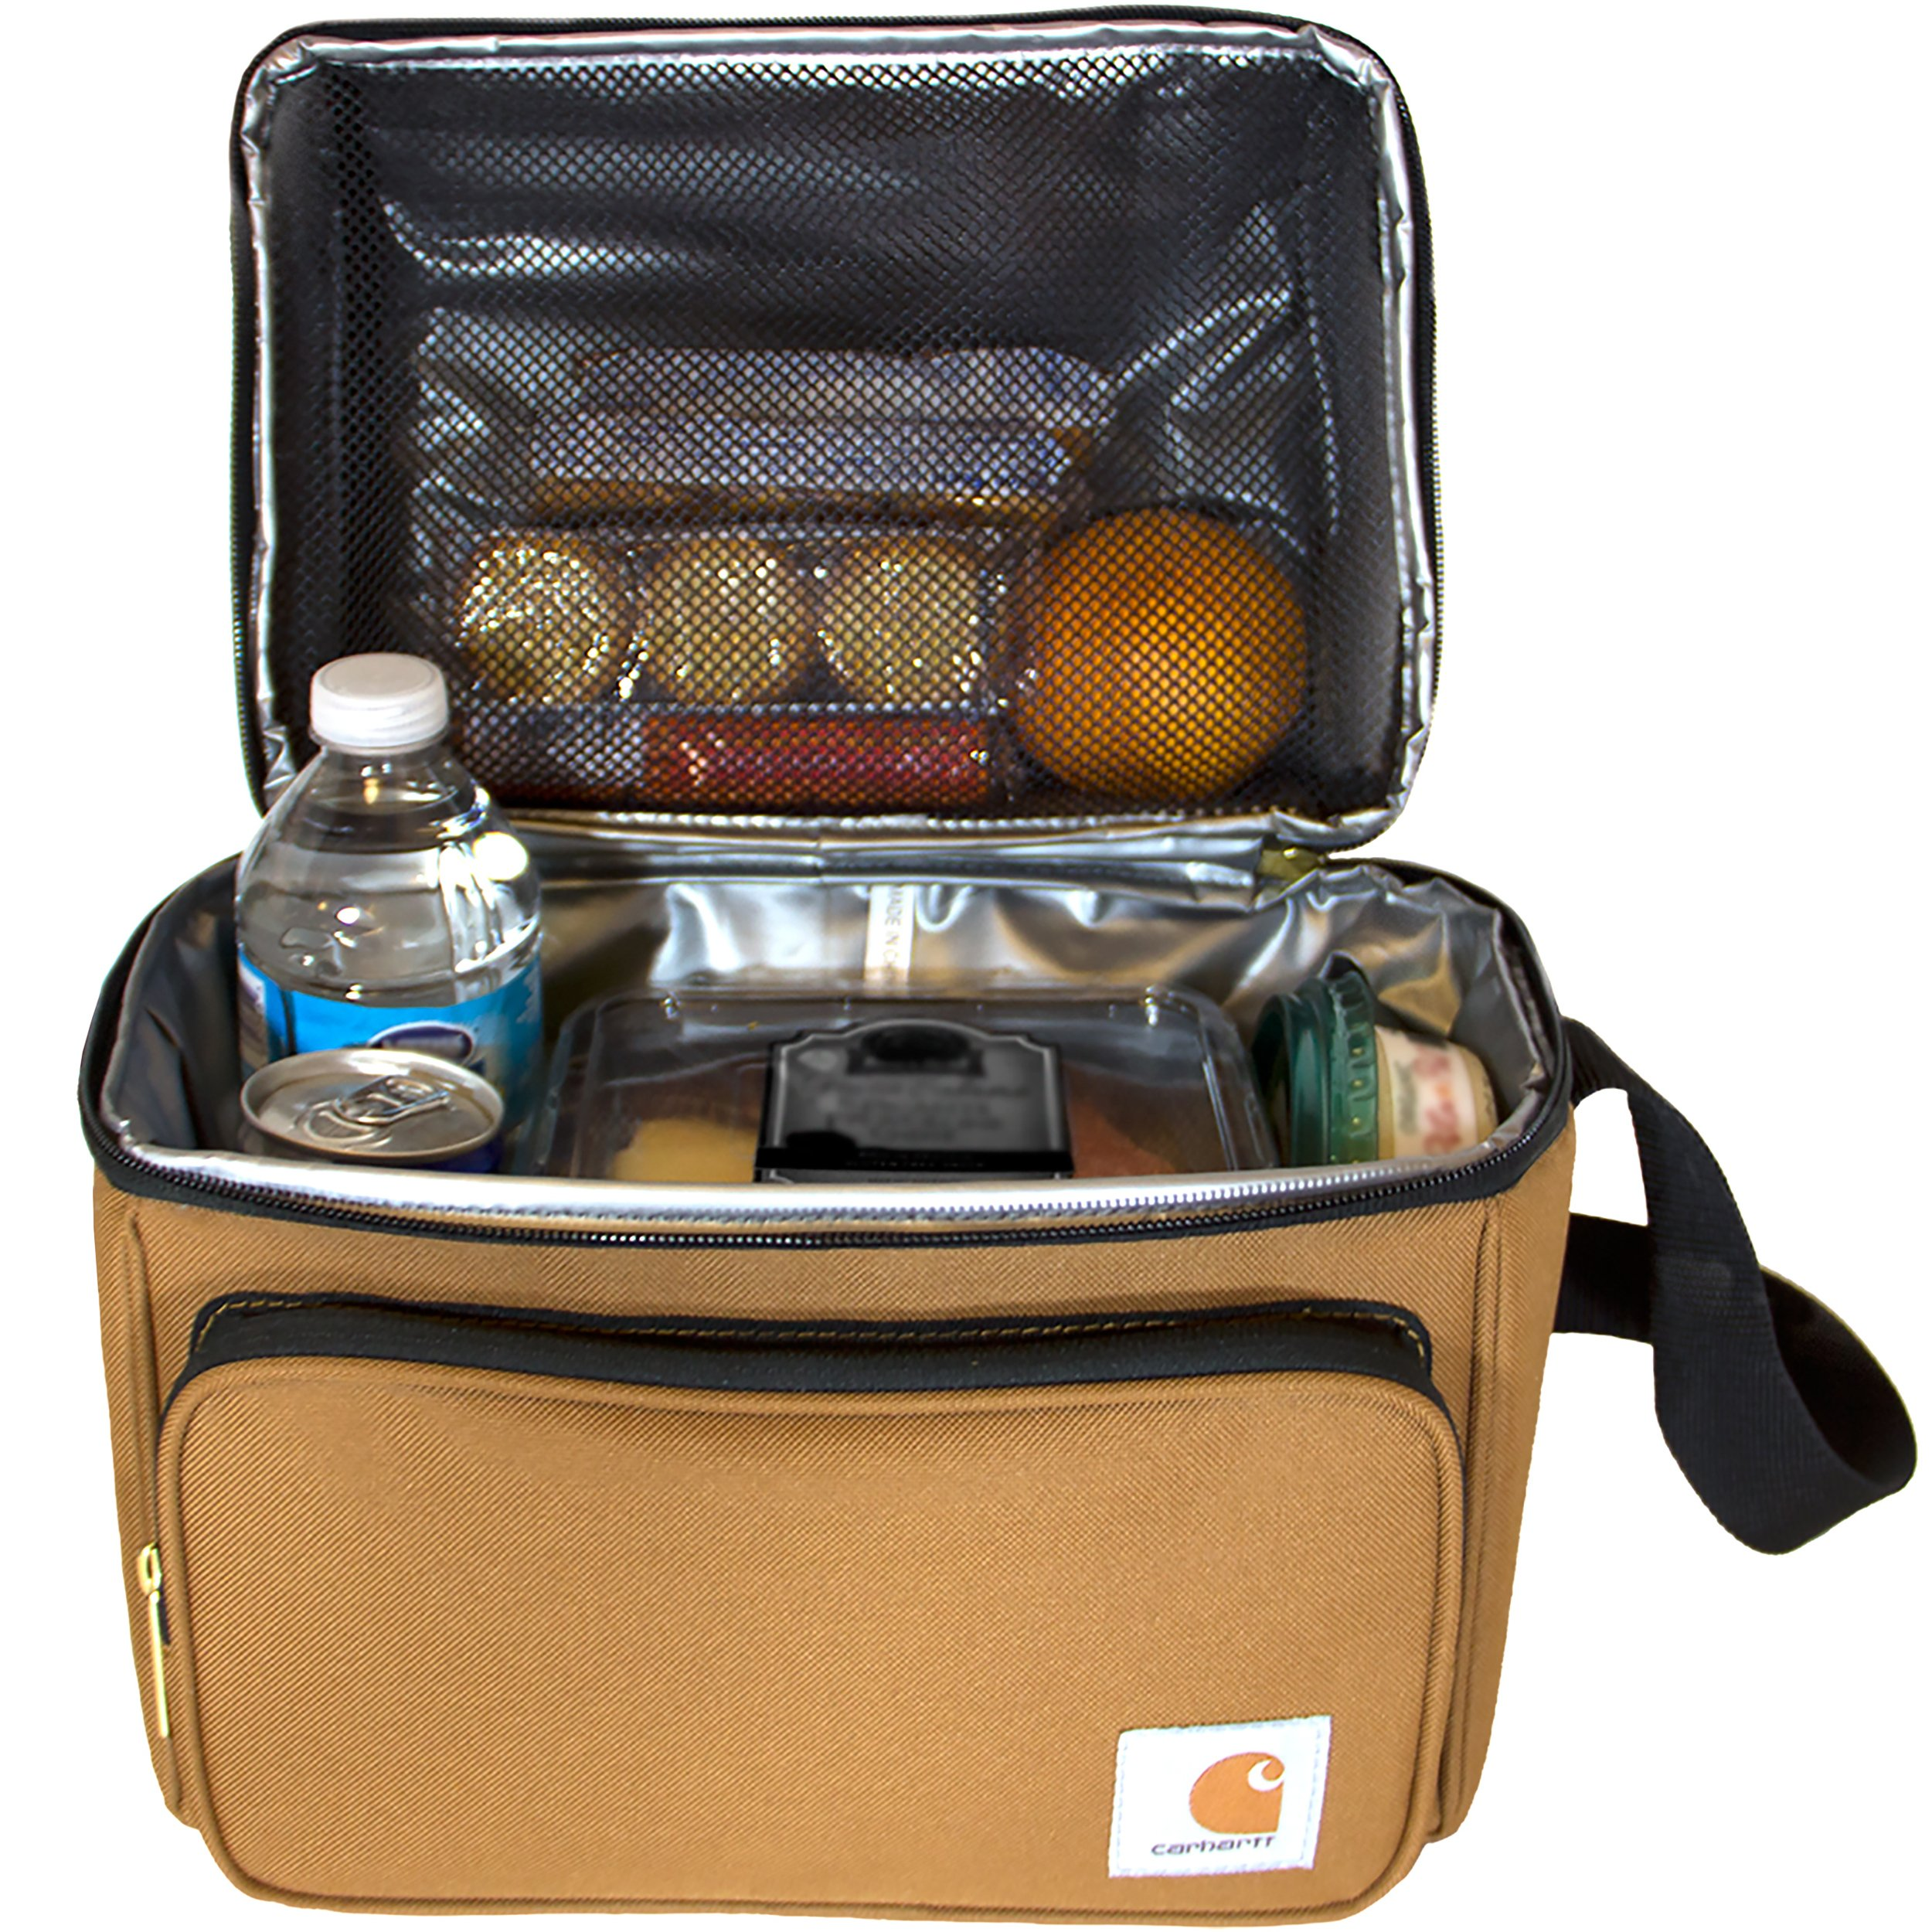 Carhartt Deluxe Dual Compartment Insulated Lunch Cooler Bag, Carhartt Brown